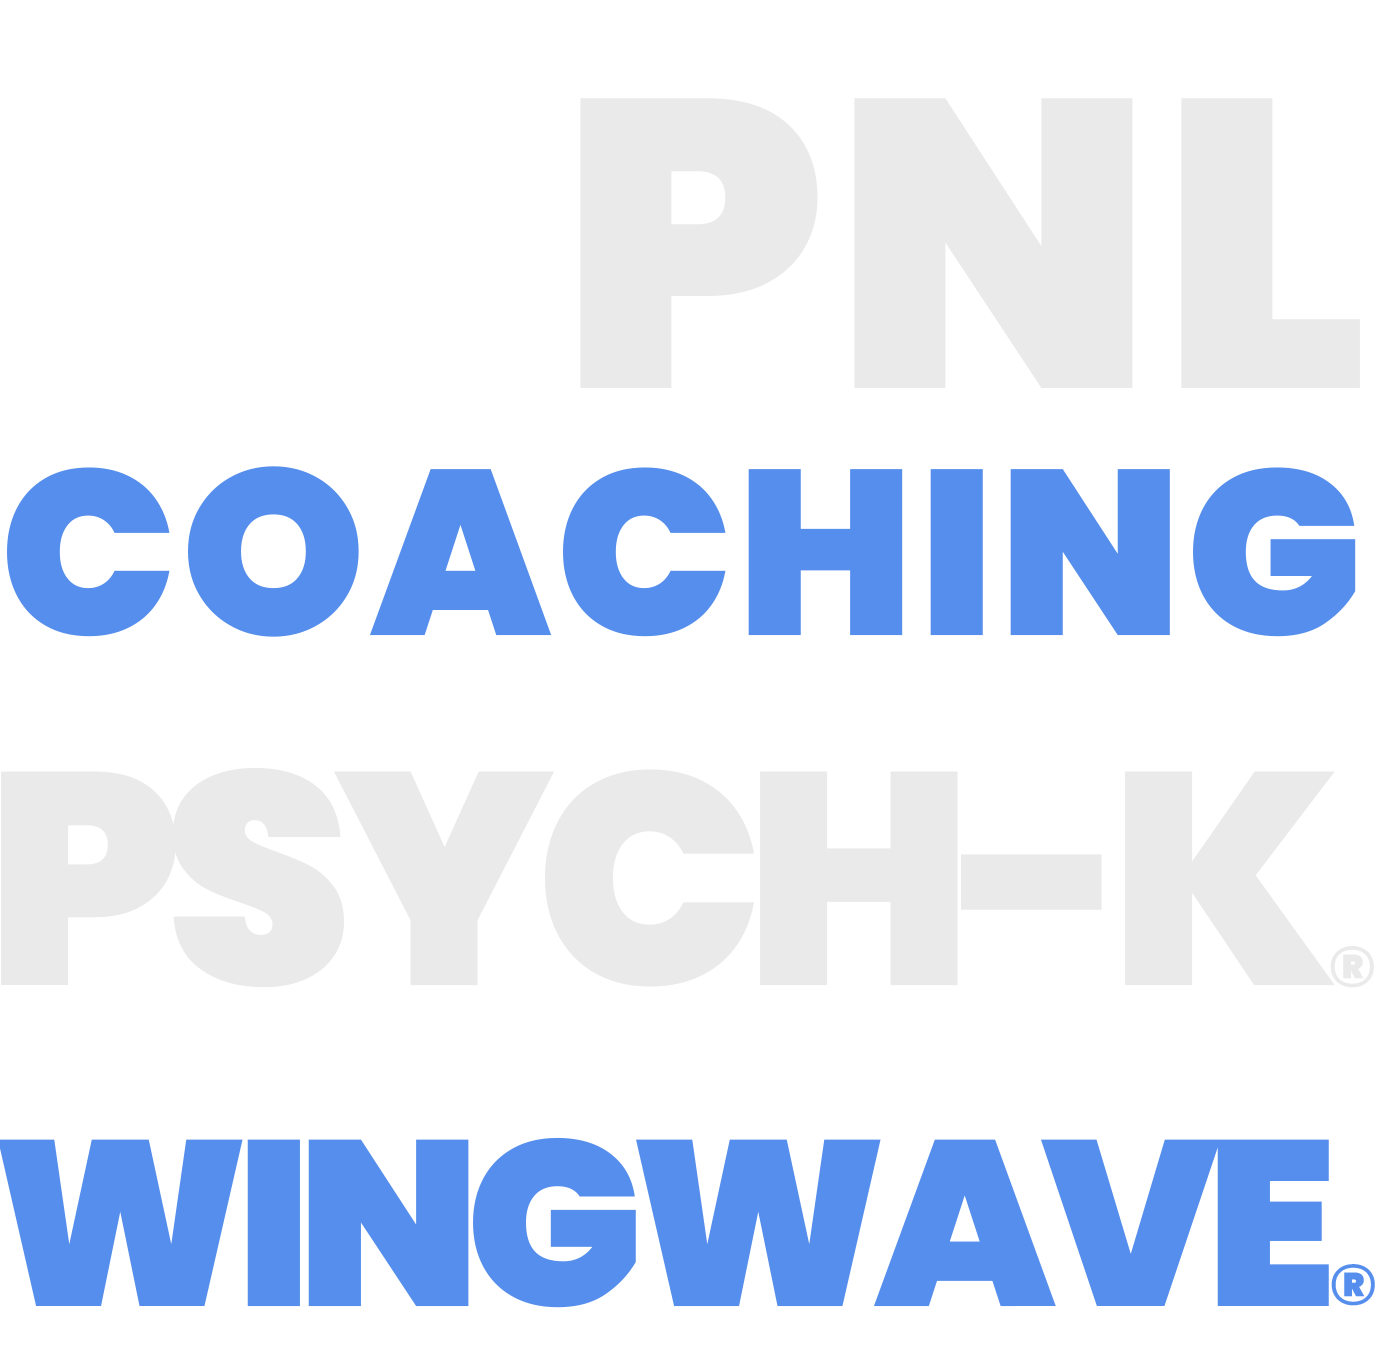 coaching pnl psyck-k wingwave